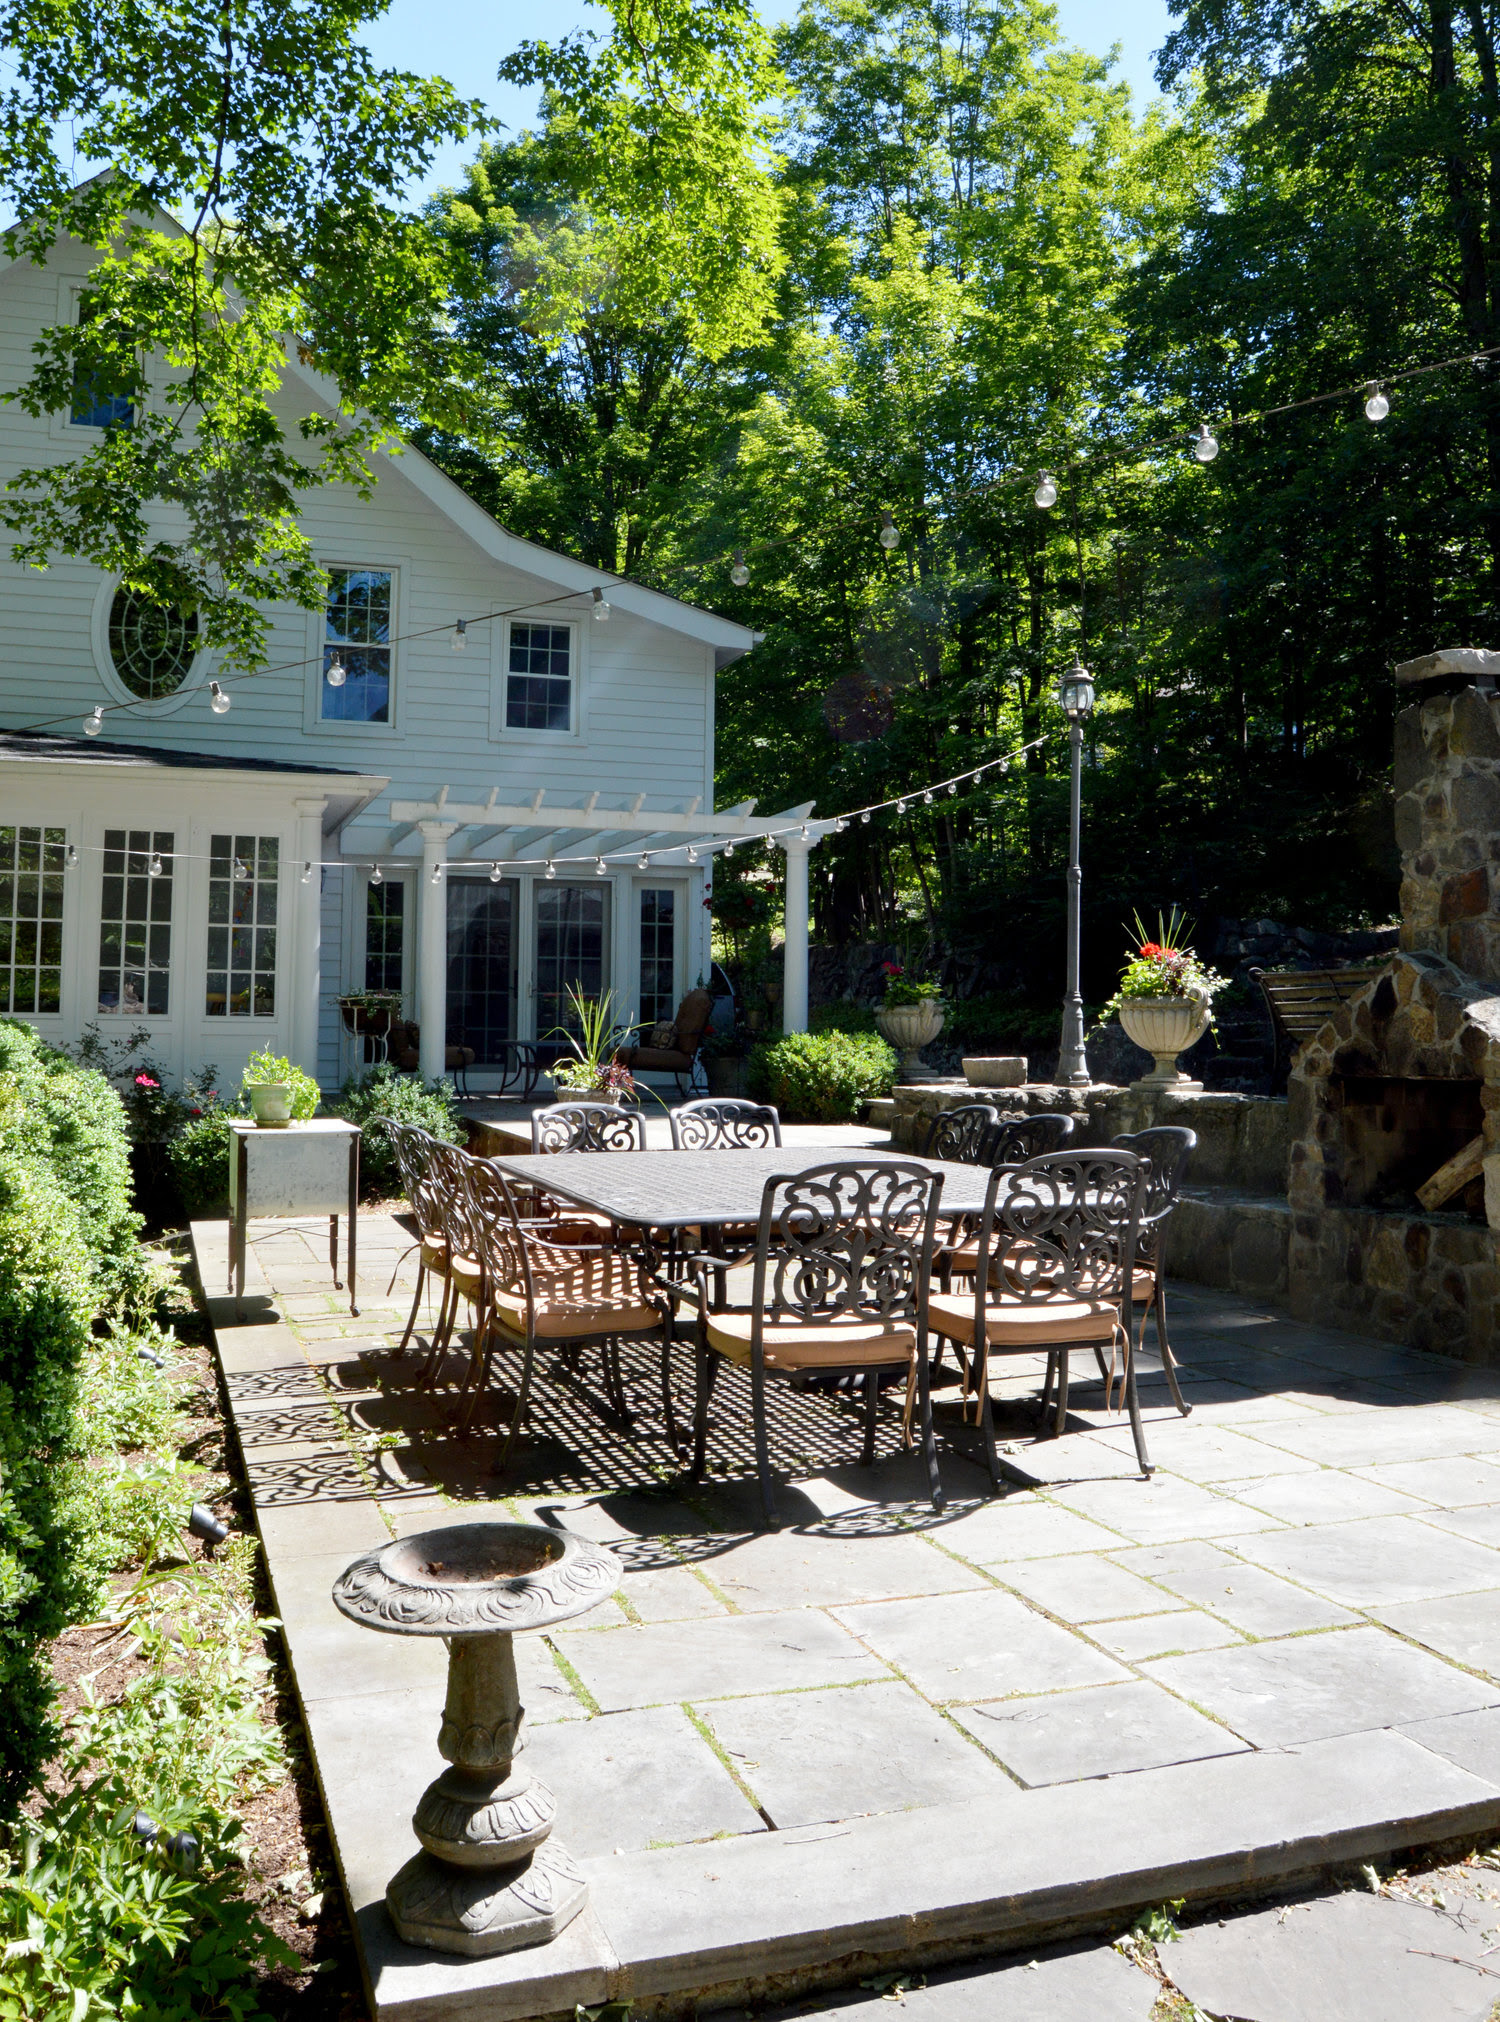 26 Landscaping Ideas for a Wonderful Backyard Retreat in Somers, NY